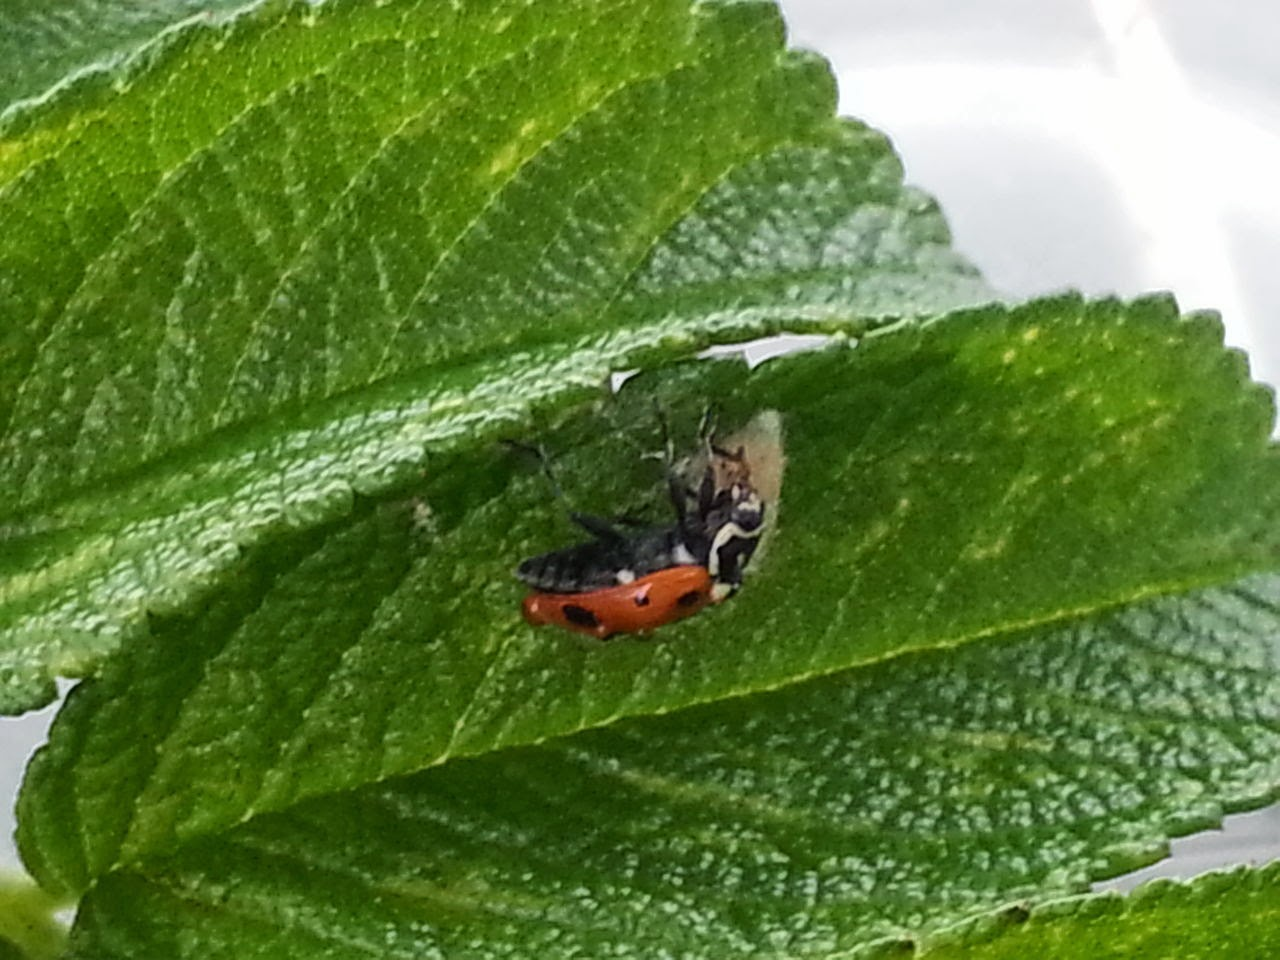 Dinocampus coccinellae larva cocoon and zombified ladybug